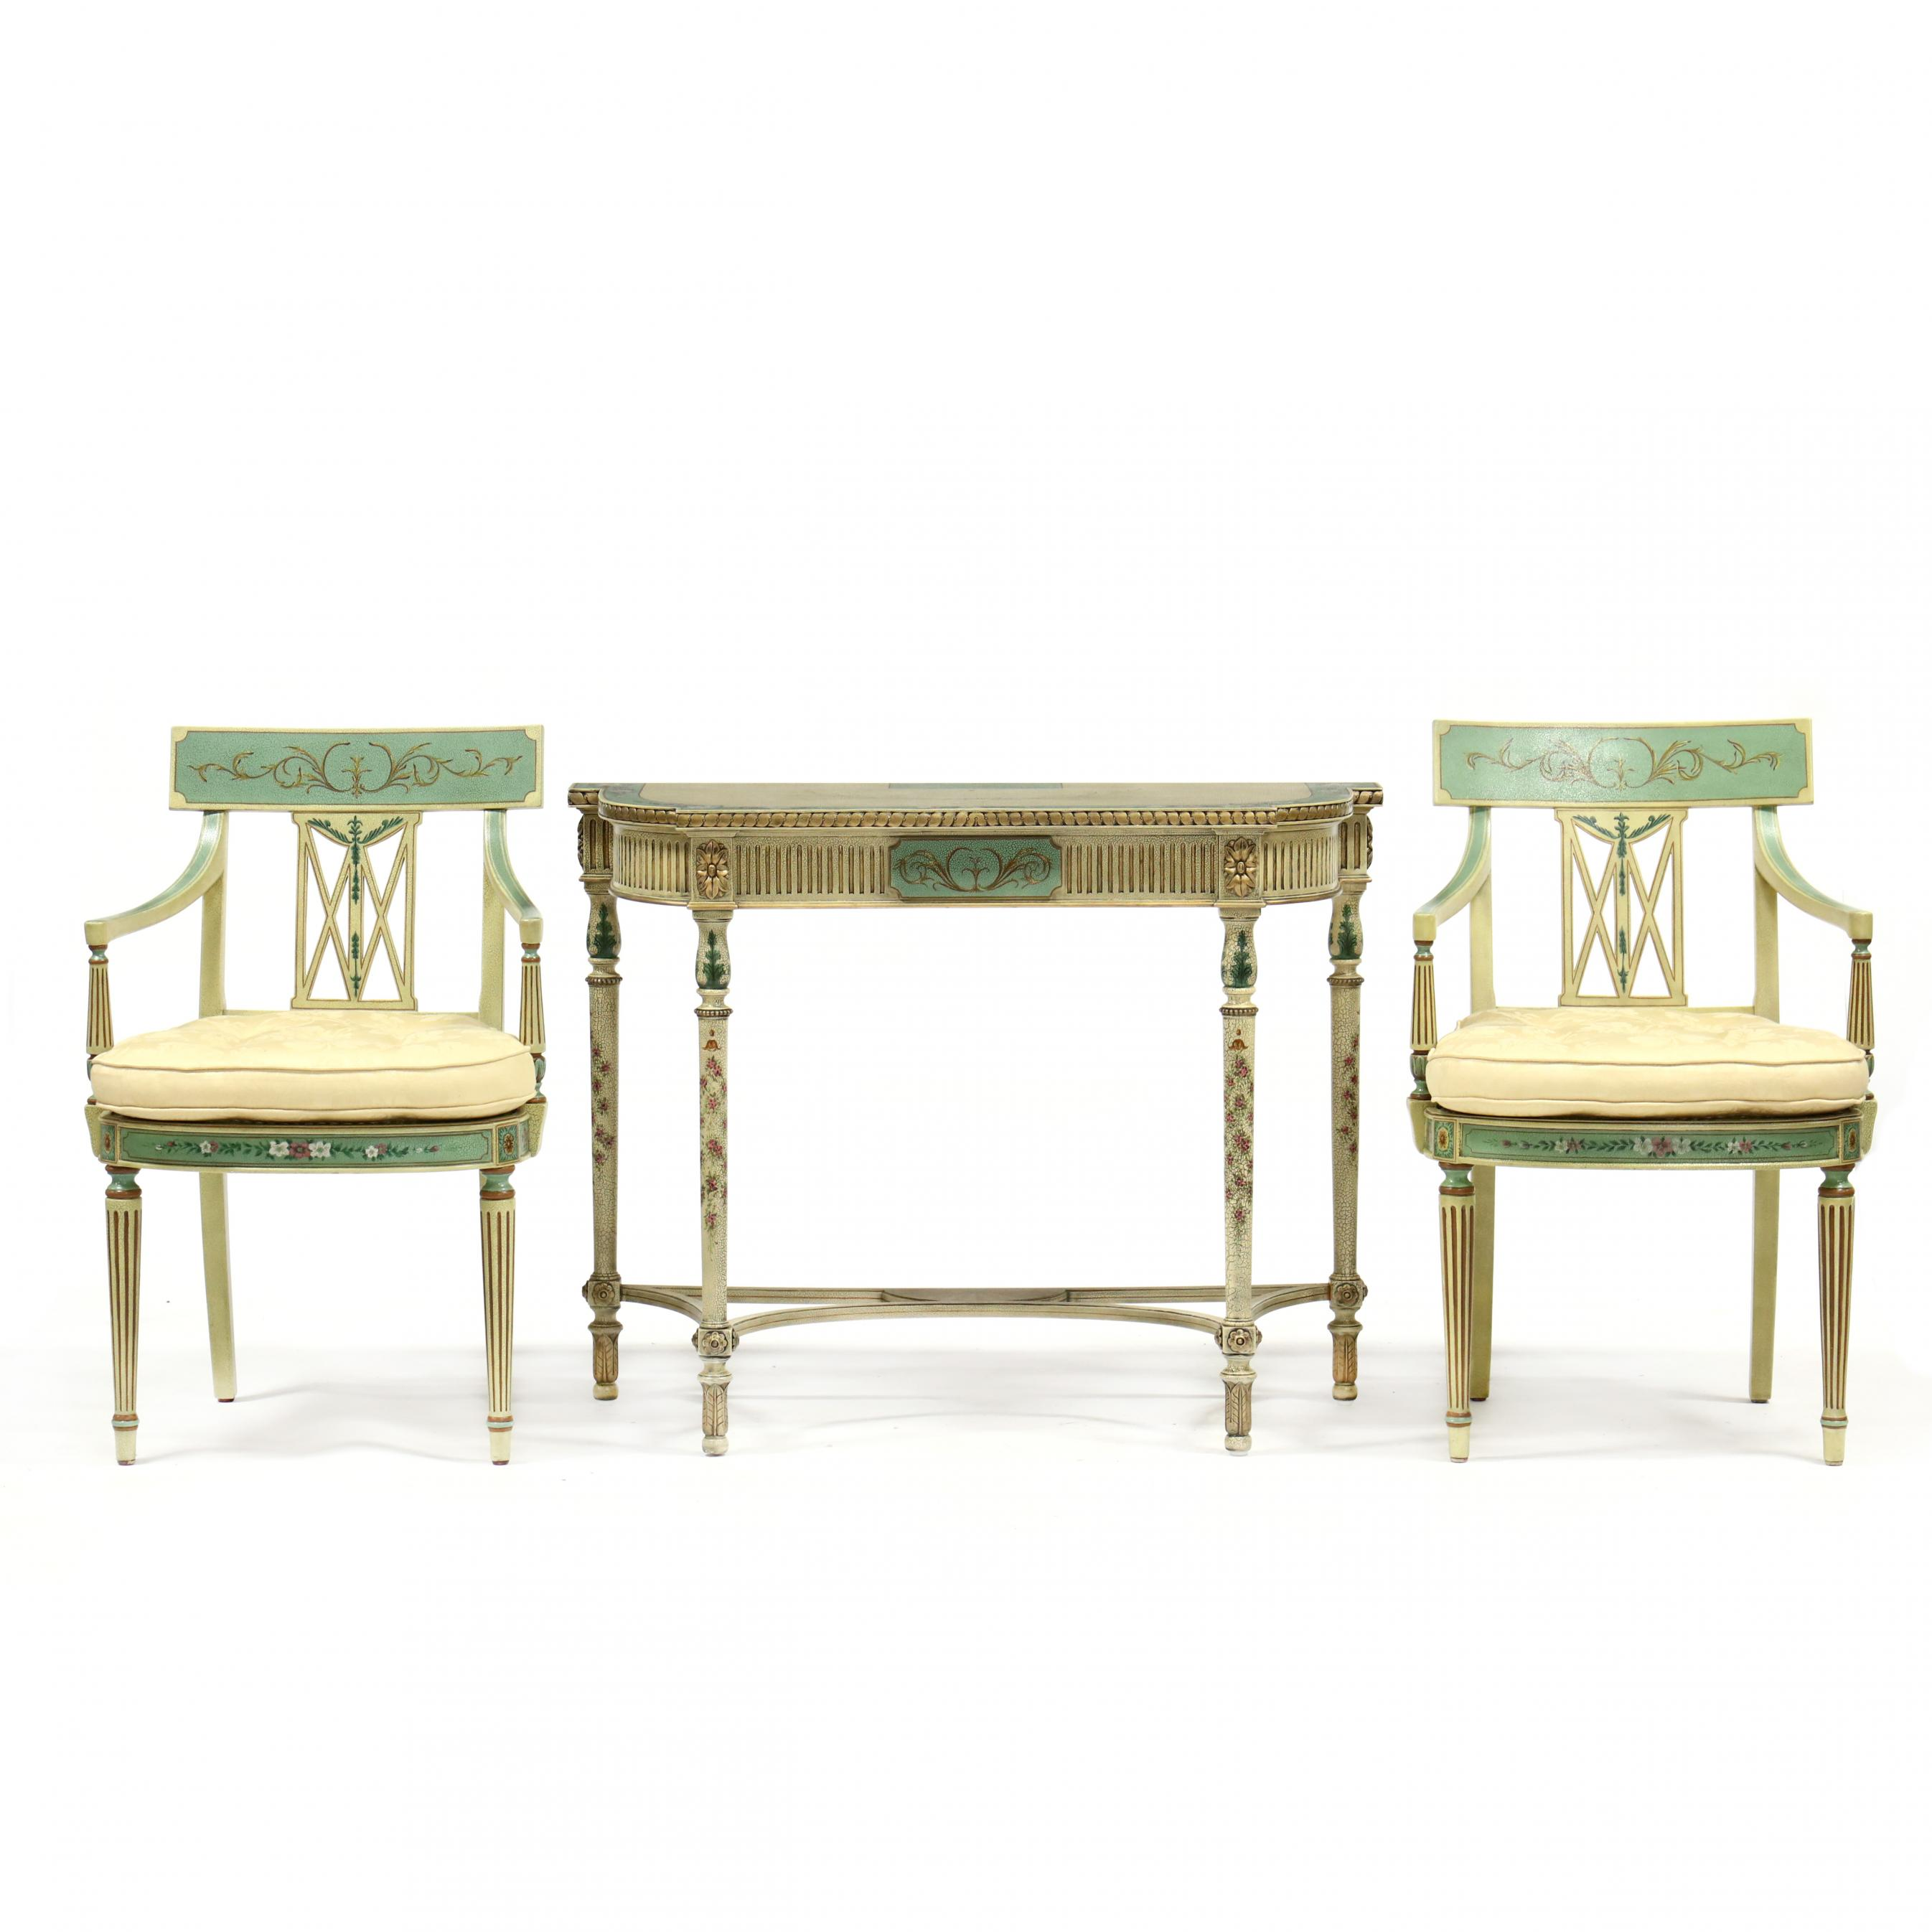 maitland-smith-adam-style-painted-console-and-two-chairs